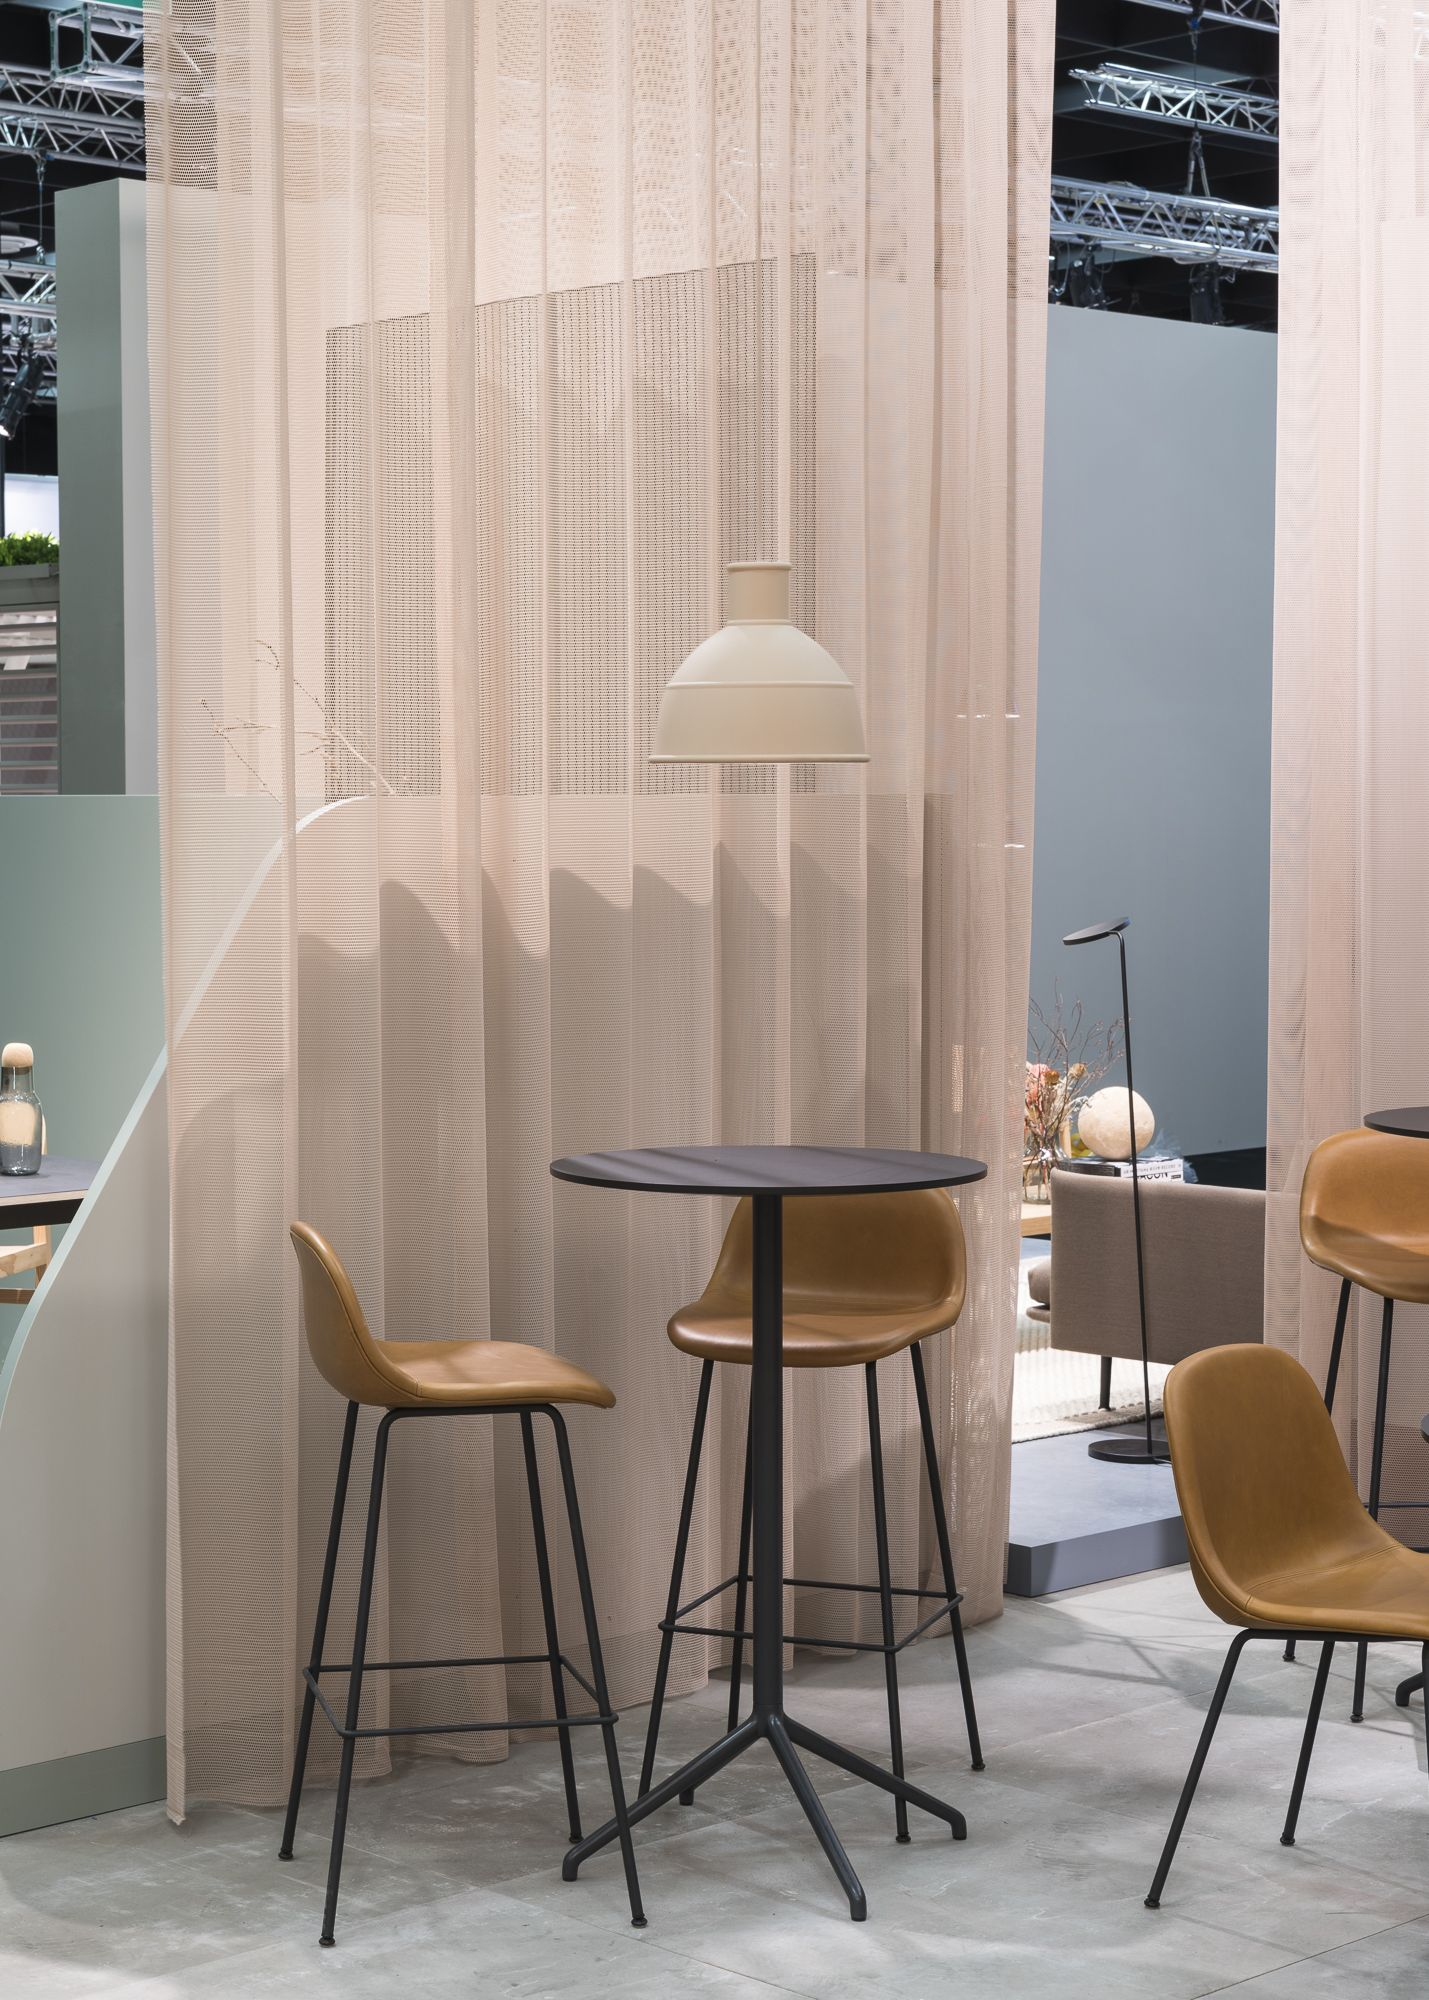 Super Minimal Bar Stool Inspiration From Muuto With An Expression Beatyapartments Chair Design Images Beatyapartmentscom